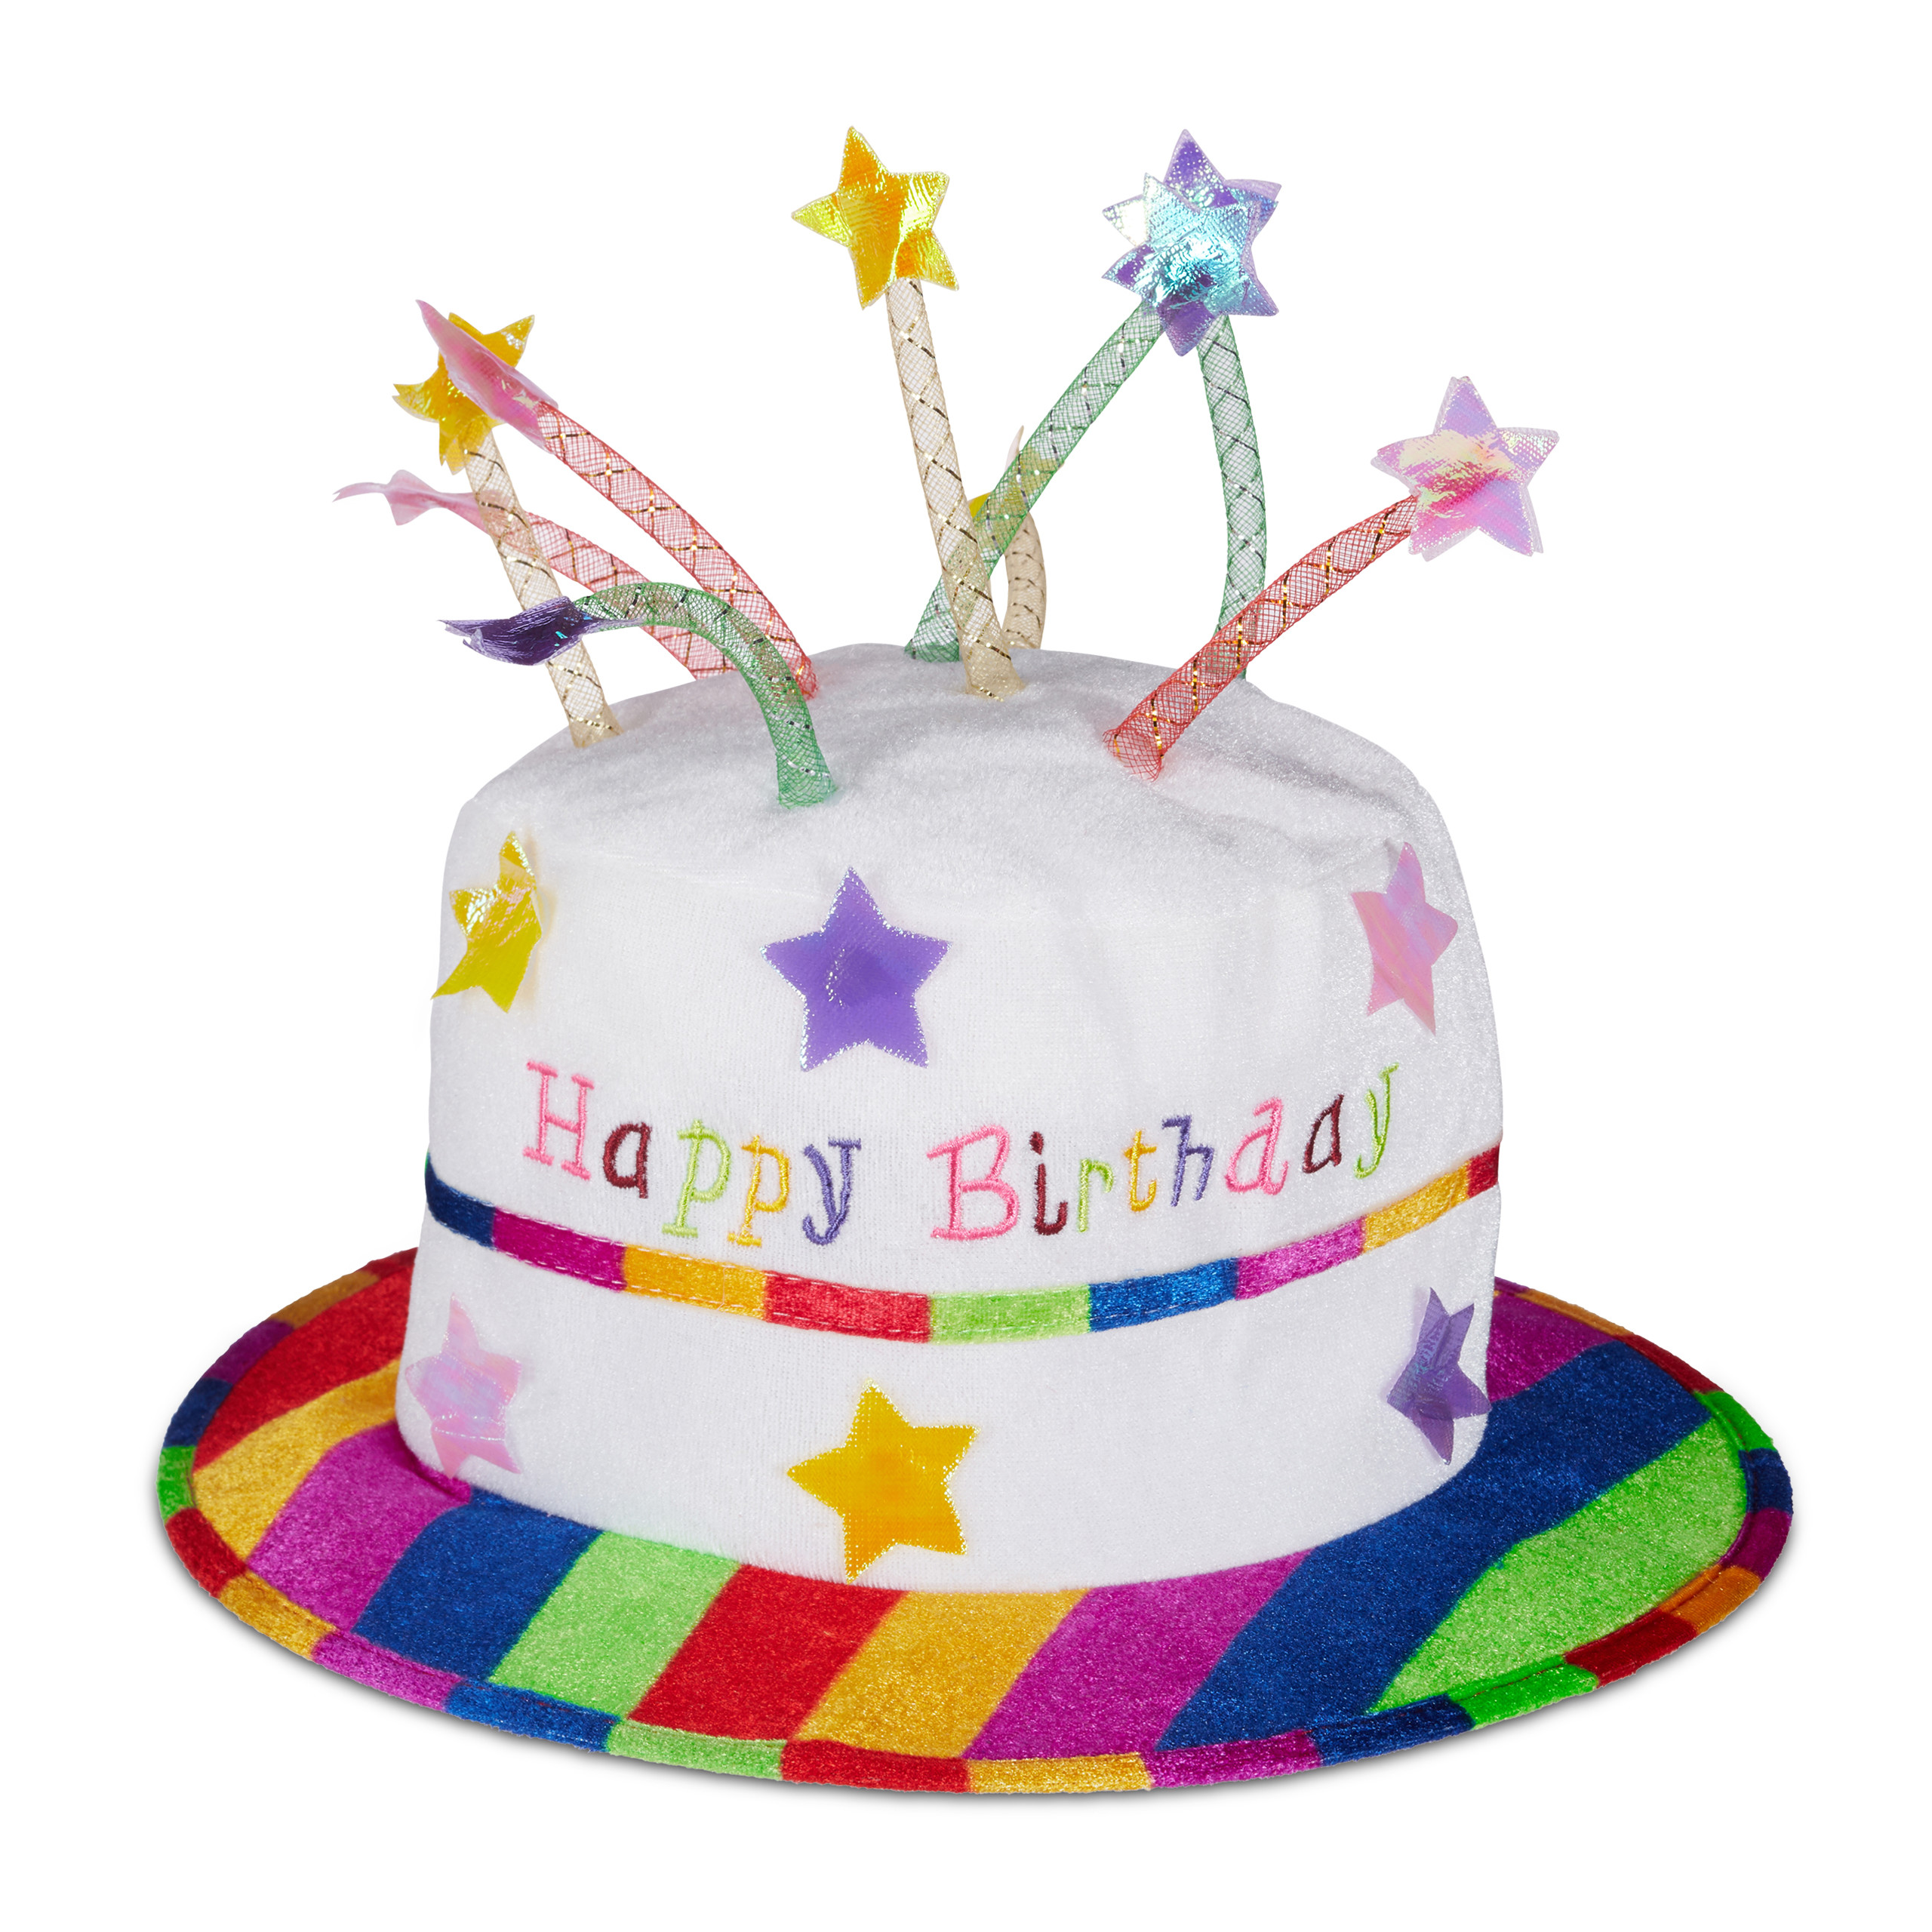 Happy Birthday Cake Hat Plush Fabric Party With Candles